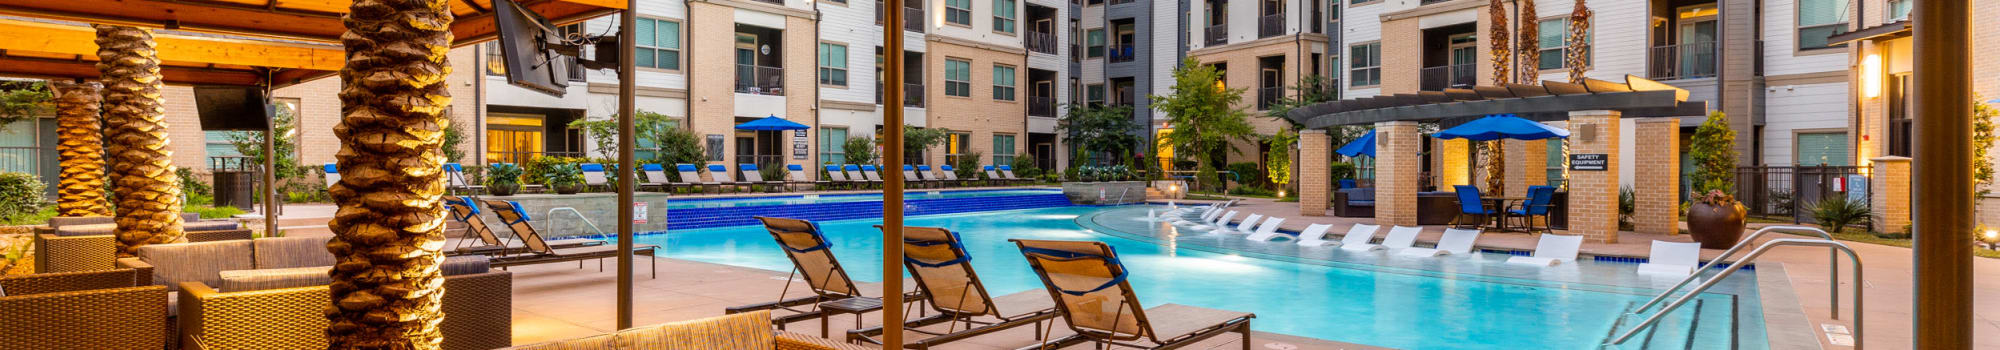 Amenities at The Abbey at Northpoint in Spring, Texas